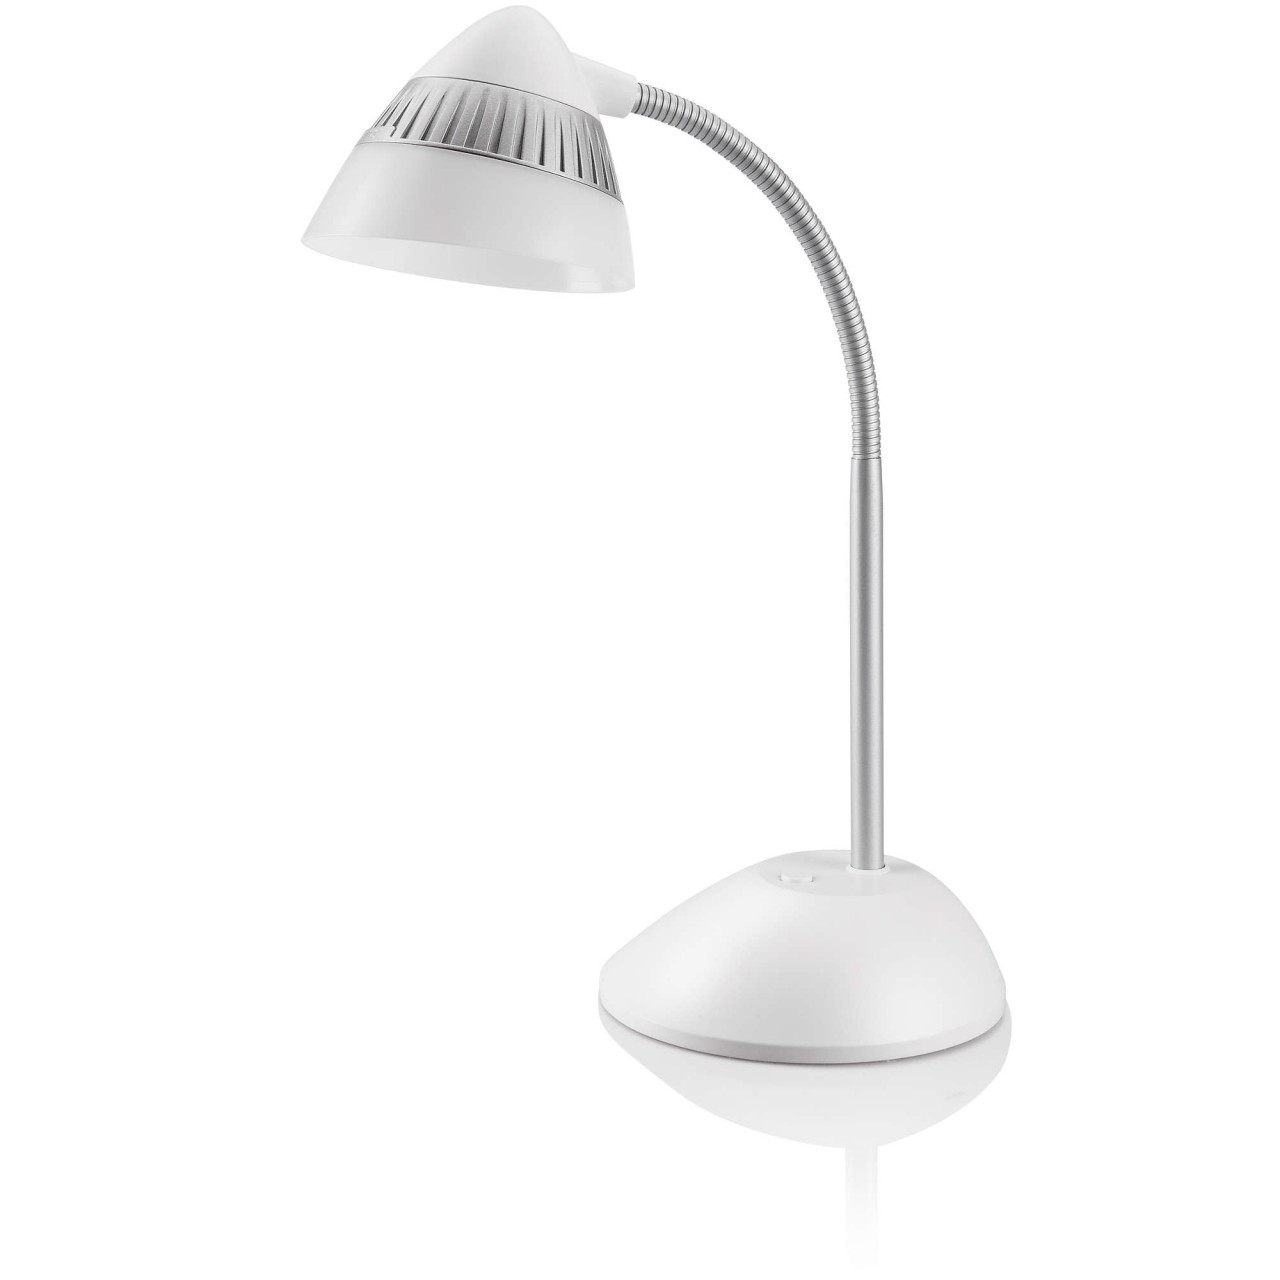 philips 70023 cap table lamp led white 1x55w in pakistan With philips table lamp 70023